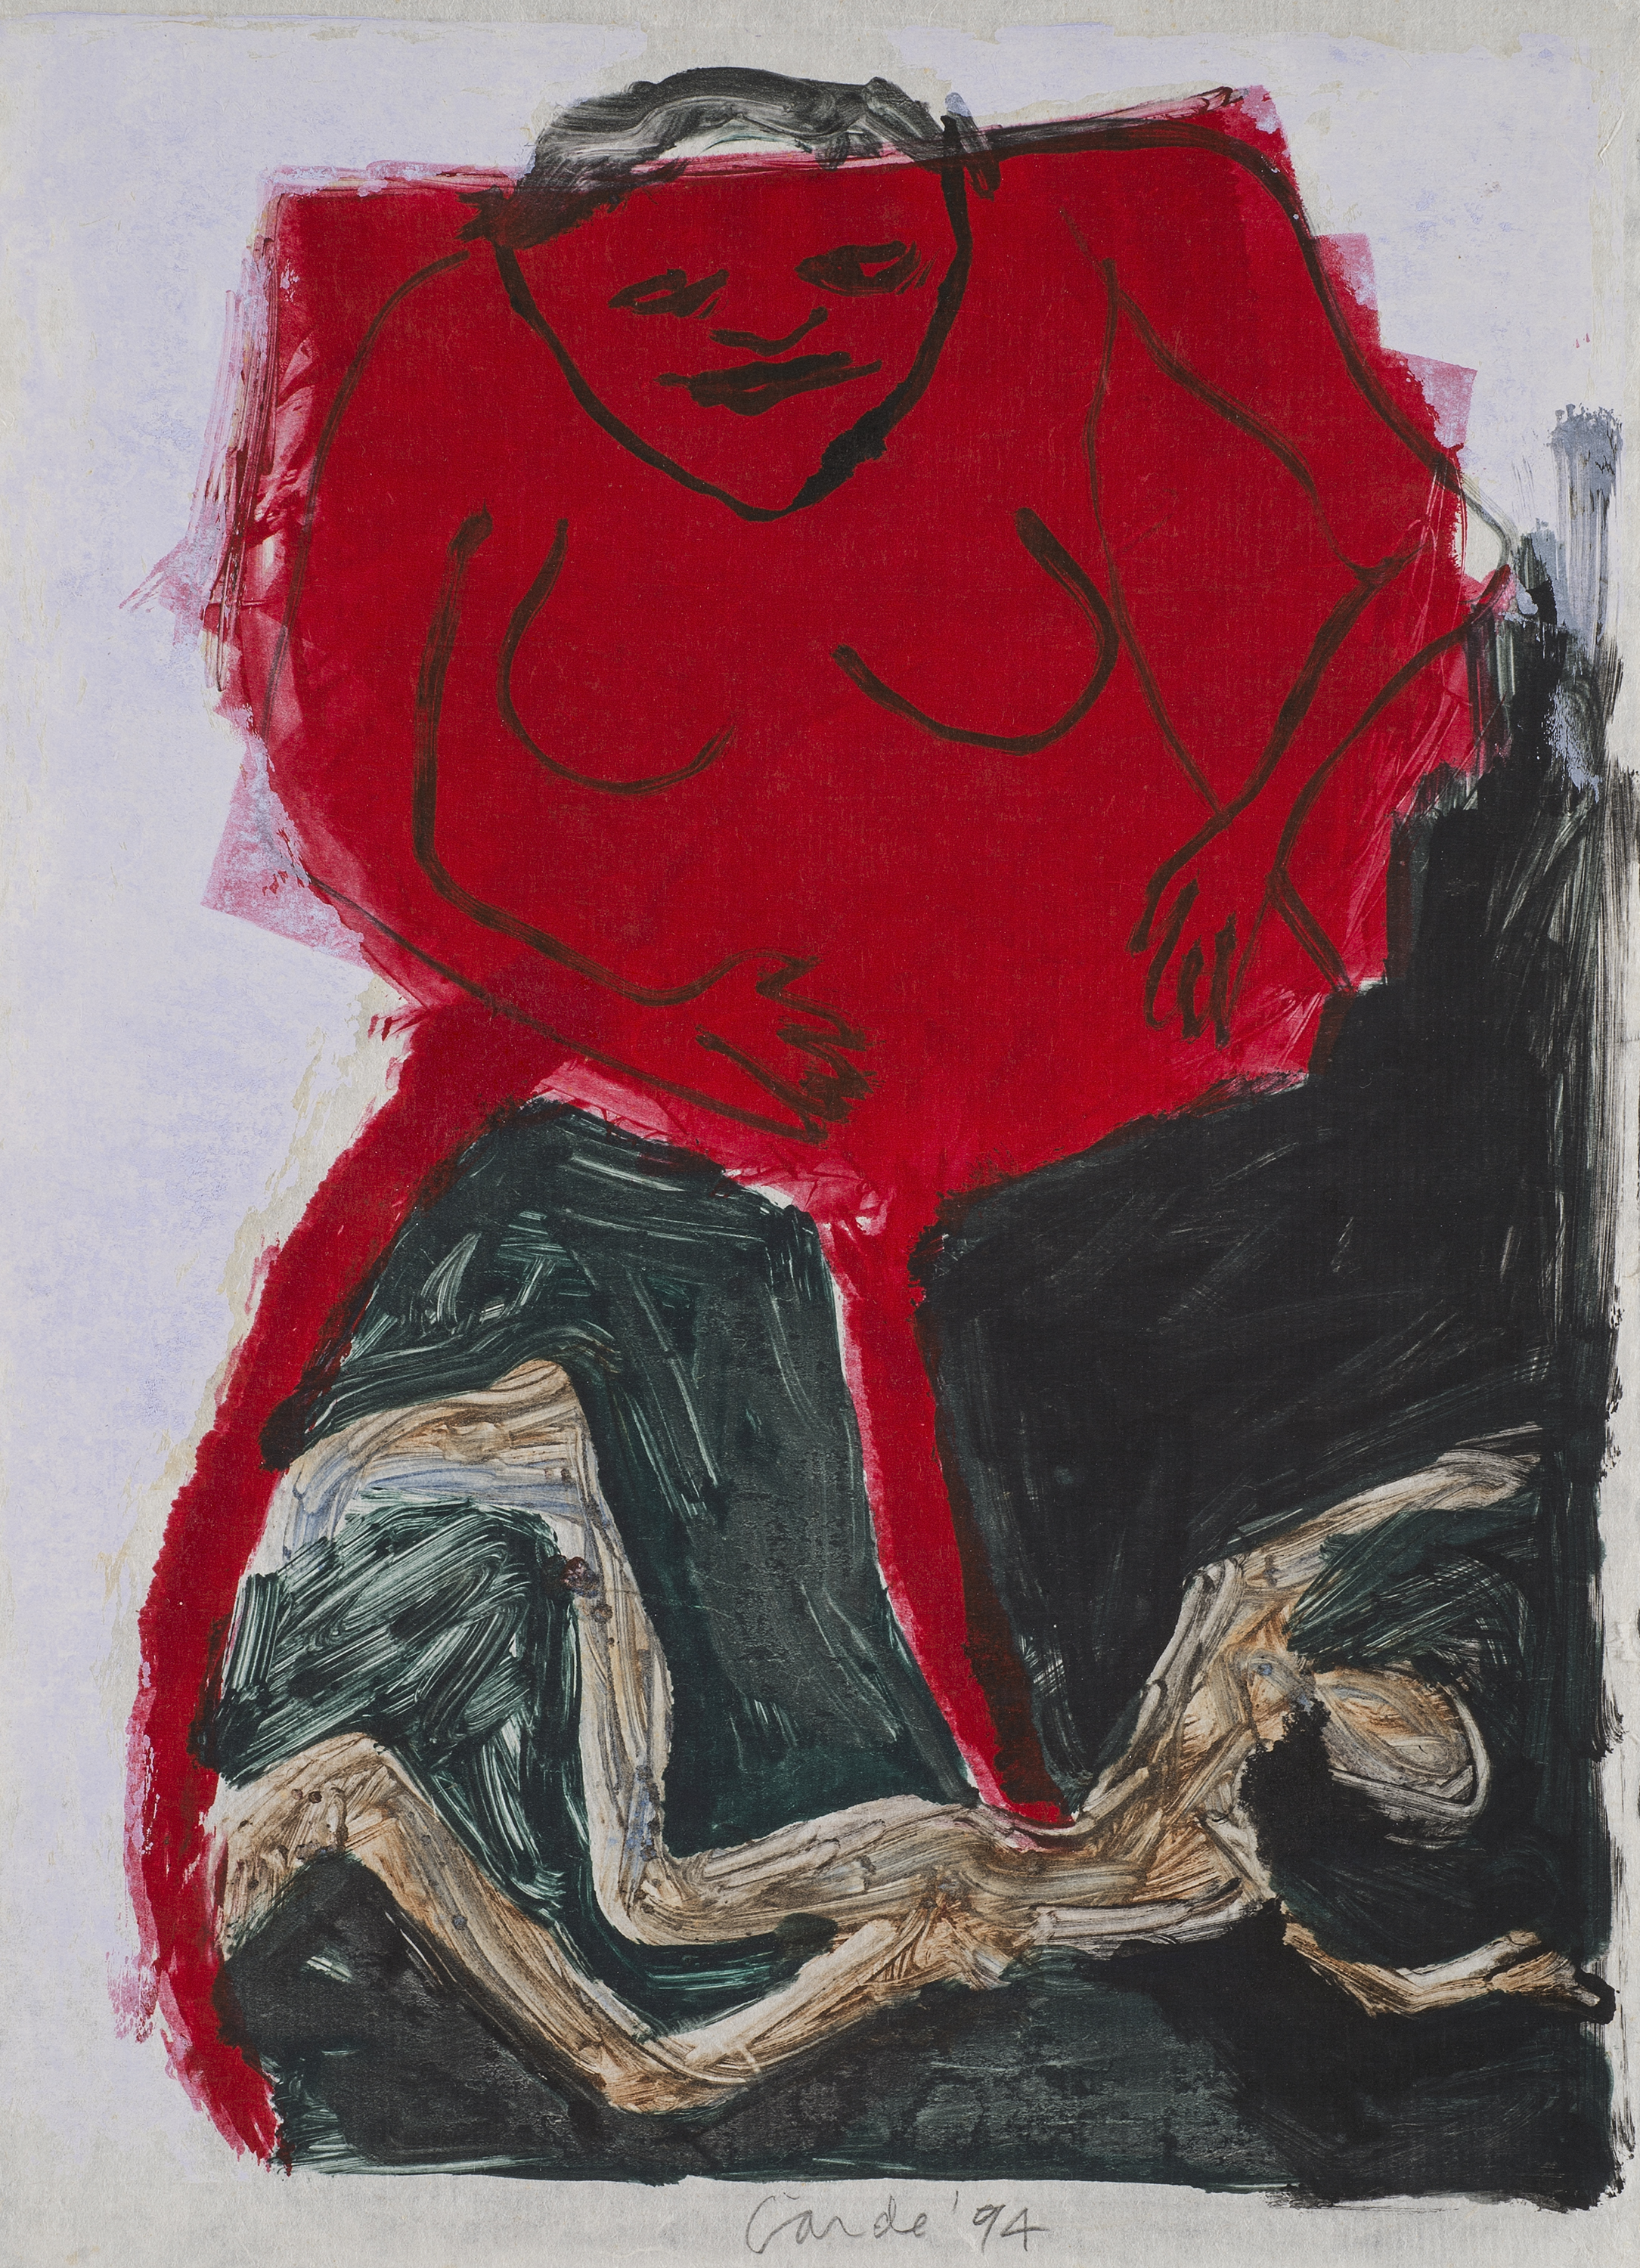 Untitled , 1987/1994 Monotype on paper 17.5 x 13 in. (44.5 x 33 cm.)